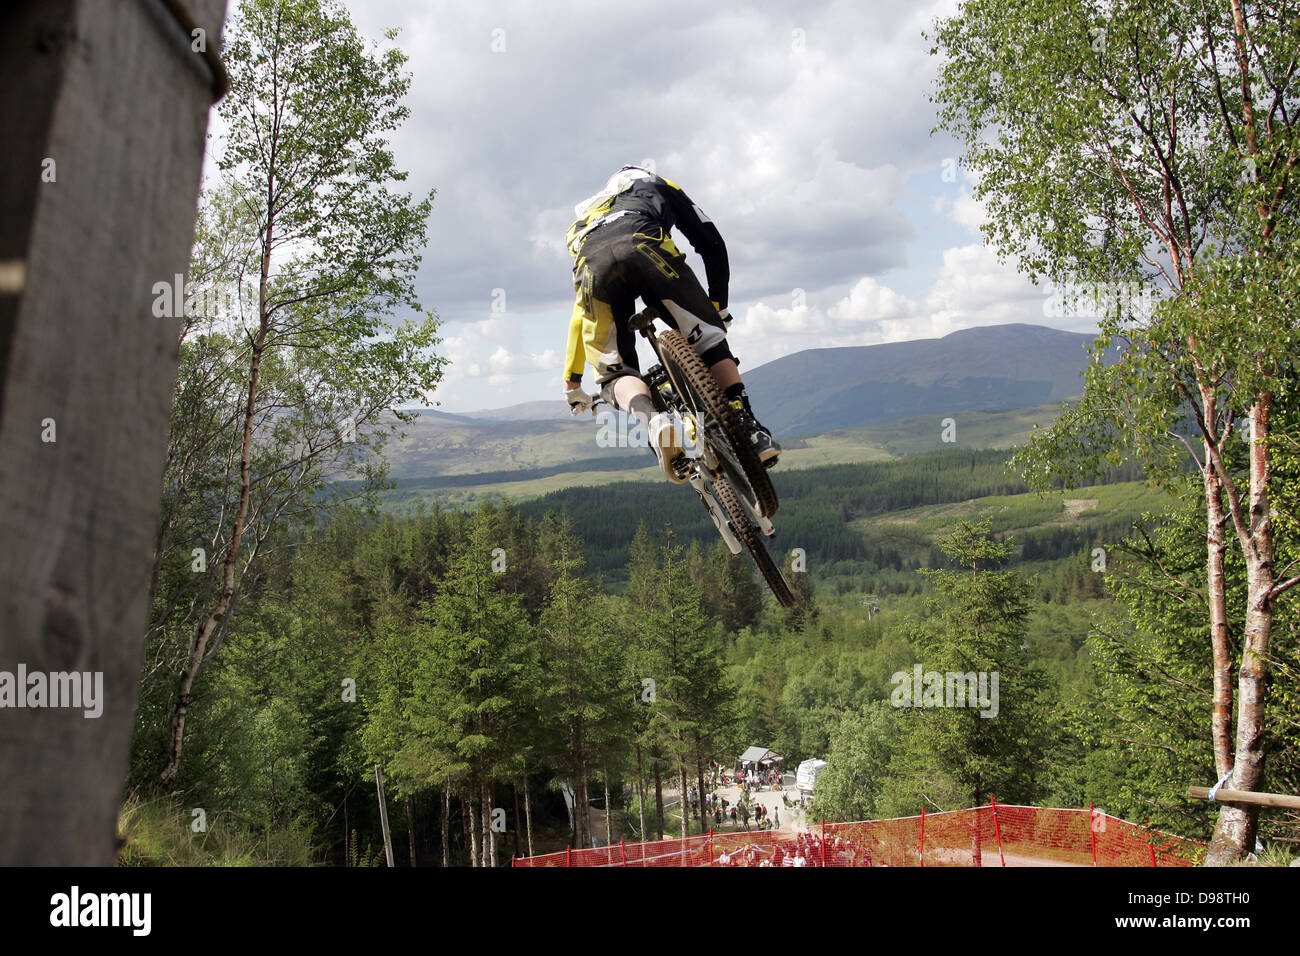 b343302657a Marc Beaumont GT Factory Racing on the course at the World Cup Downhill,  Fort William